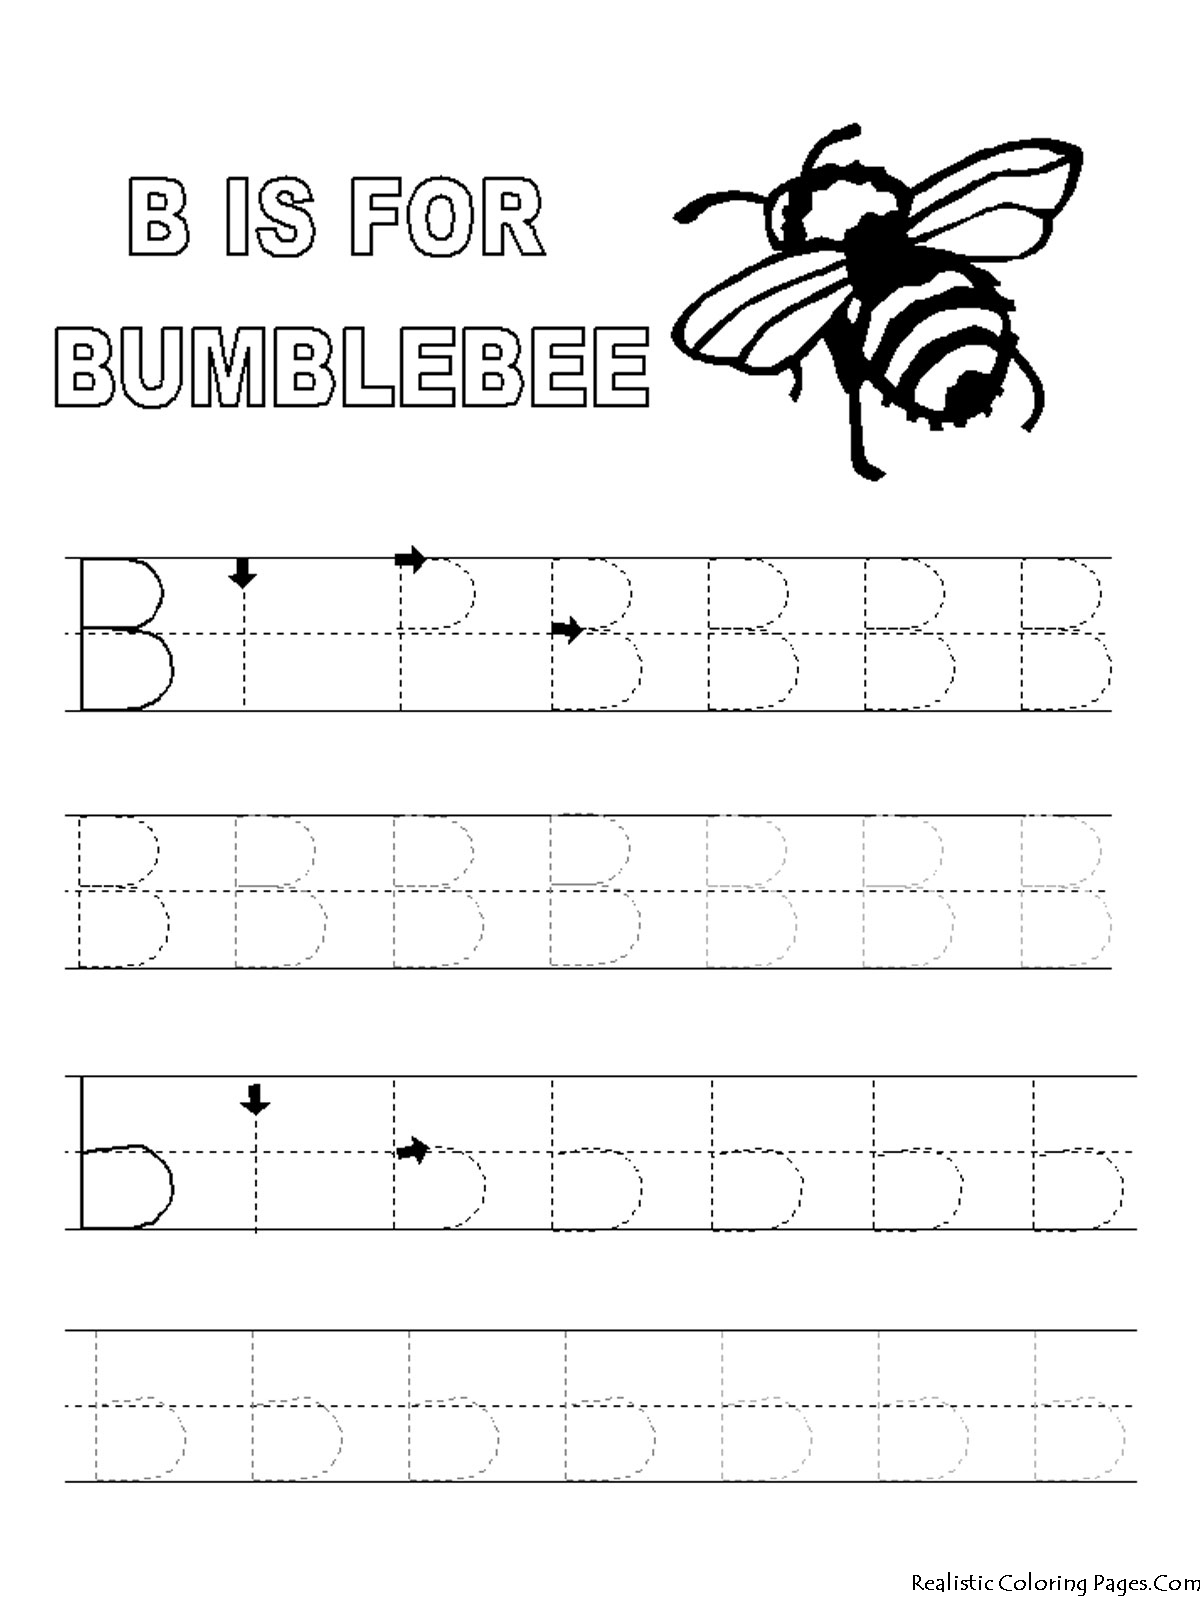 b letters alphabet coloring pages realistic coloring pages. Black Bedroom Furniture Sets. Home Design Ideas